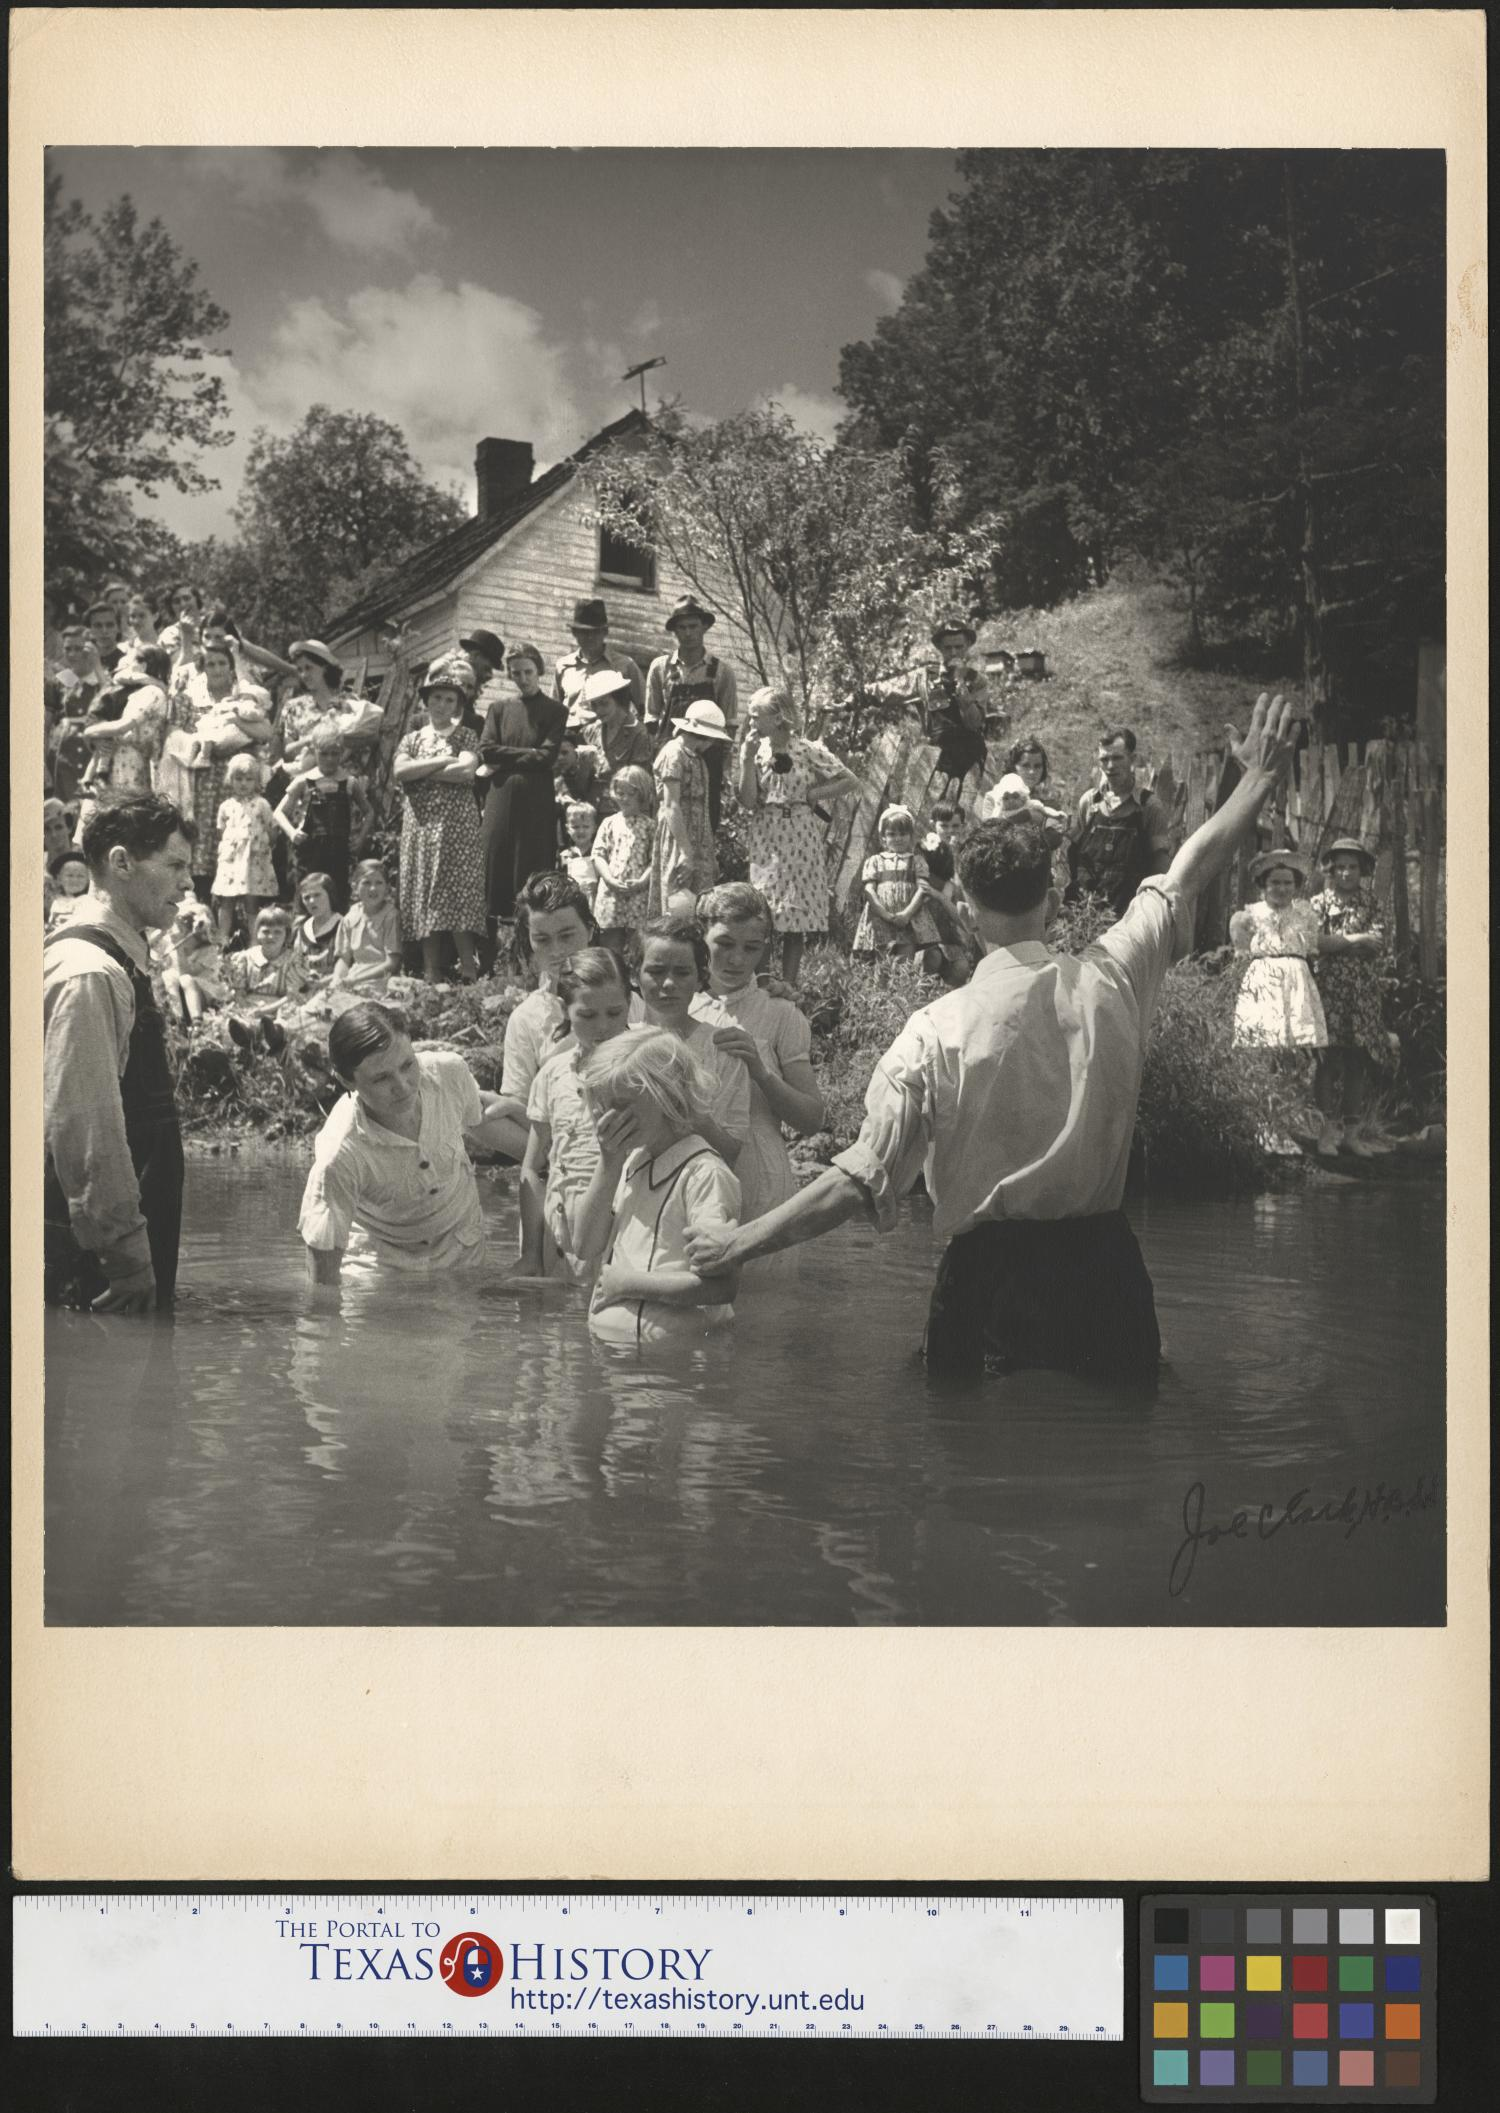 [Baptism in Olde Towne Creek], Photograph of the baptism of Ivana Wright, who is standing a creek next to Preacher Hugh Vancel; Vancel is facing the bank and raising one of his hands toward the crowd standing on the bank. Immediately behind them, Hester Welch, Minnie Hicks, Cleo McCurey, Lilian Hicks, and Lenore Treece are also in the creek, standing in line. The baptisms took place int he Olde Towne Creek outside John Owens home in Red Hill, Tennessee.,